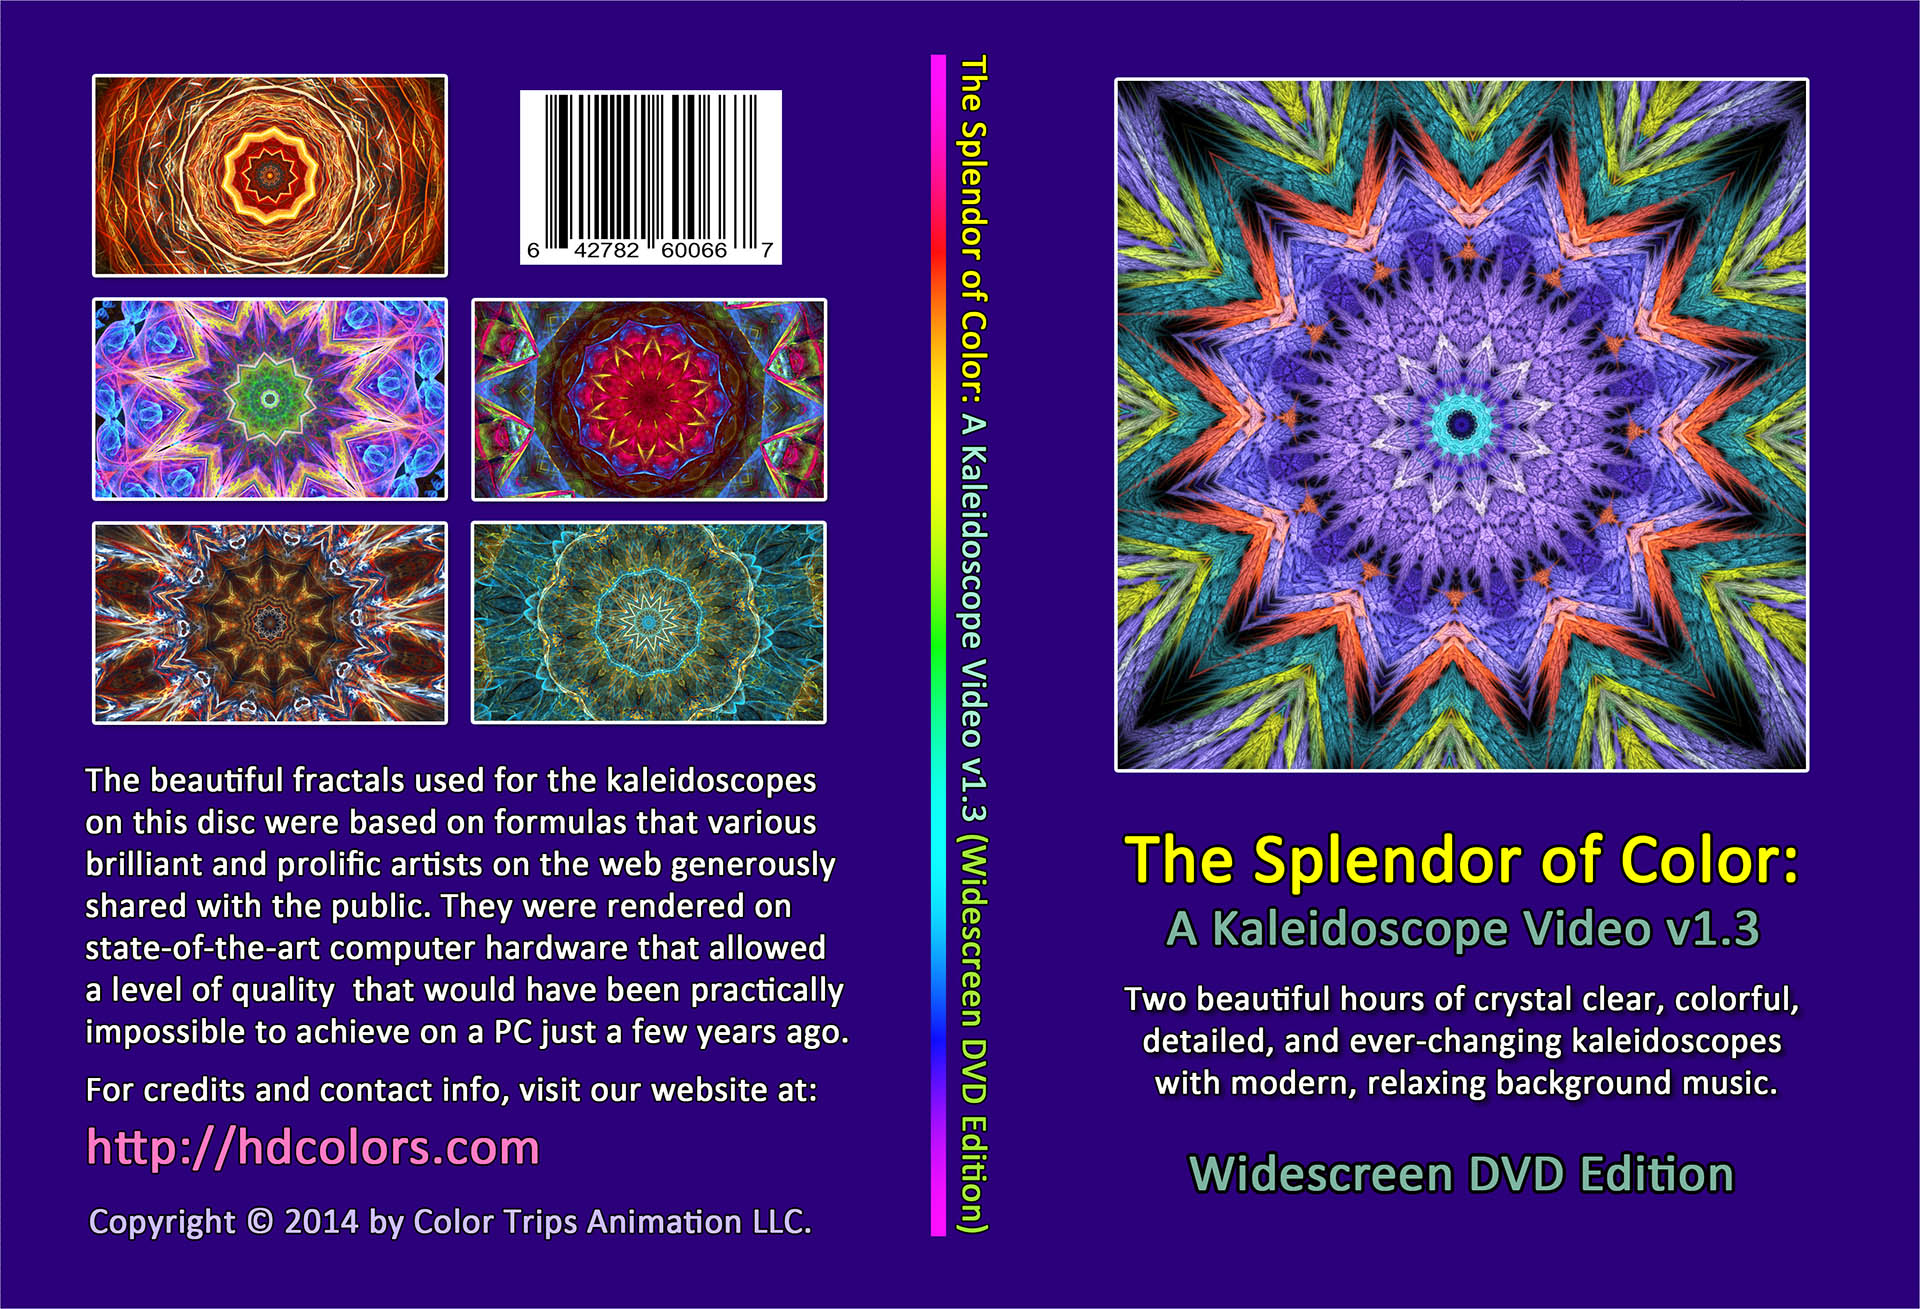 Here is the DVD Artwork for v1.3